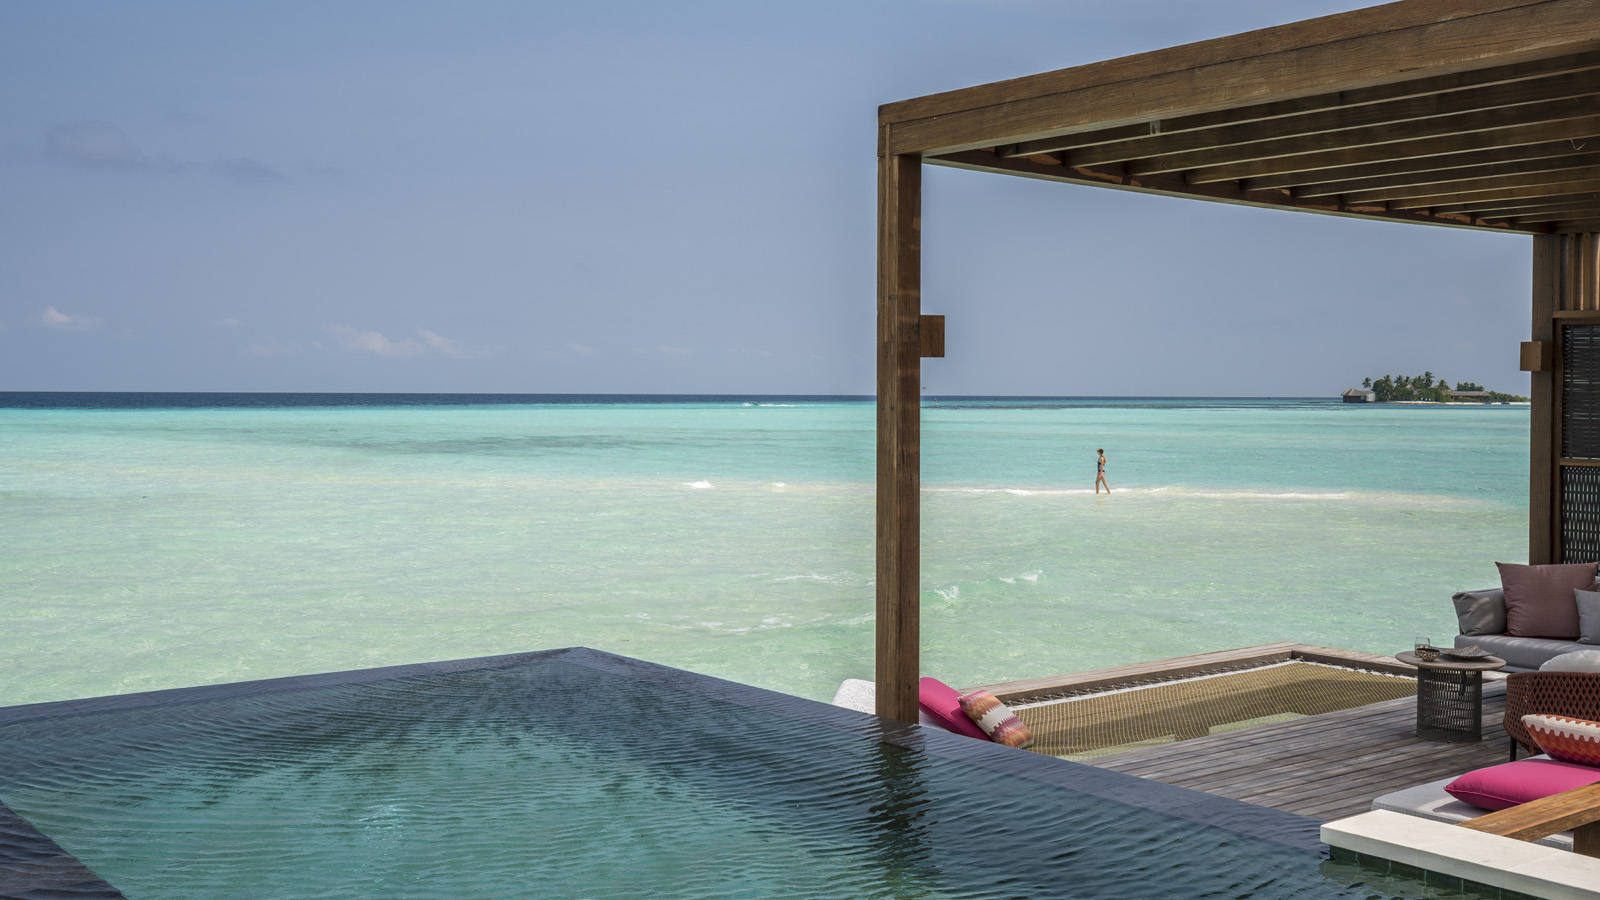 Bed and Breakfast Package Offered at Four Seasons Resort Maldives at Kuda Huraa, a Luxury Resort in the Maldives